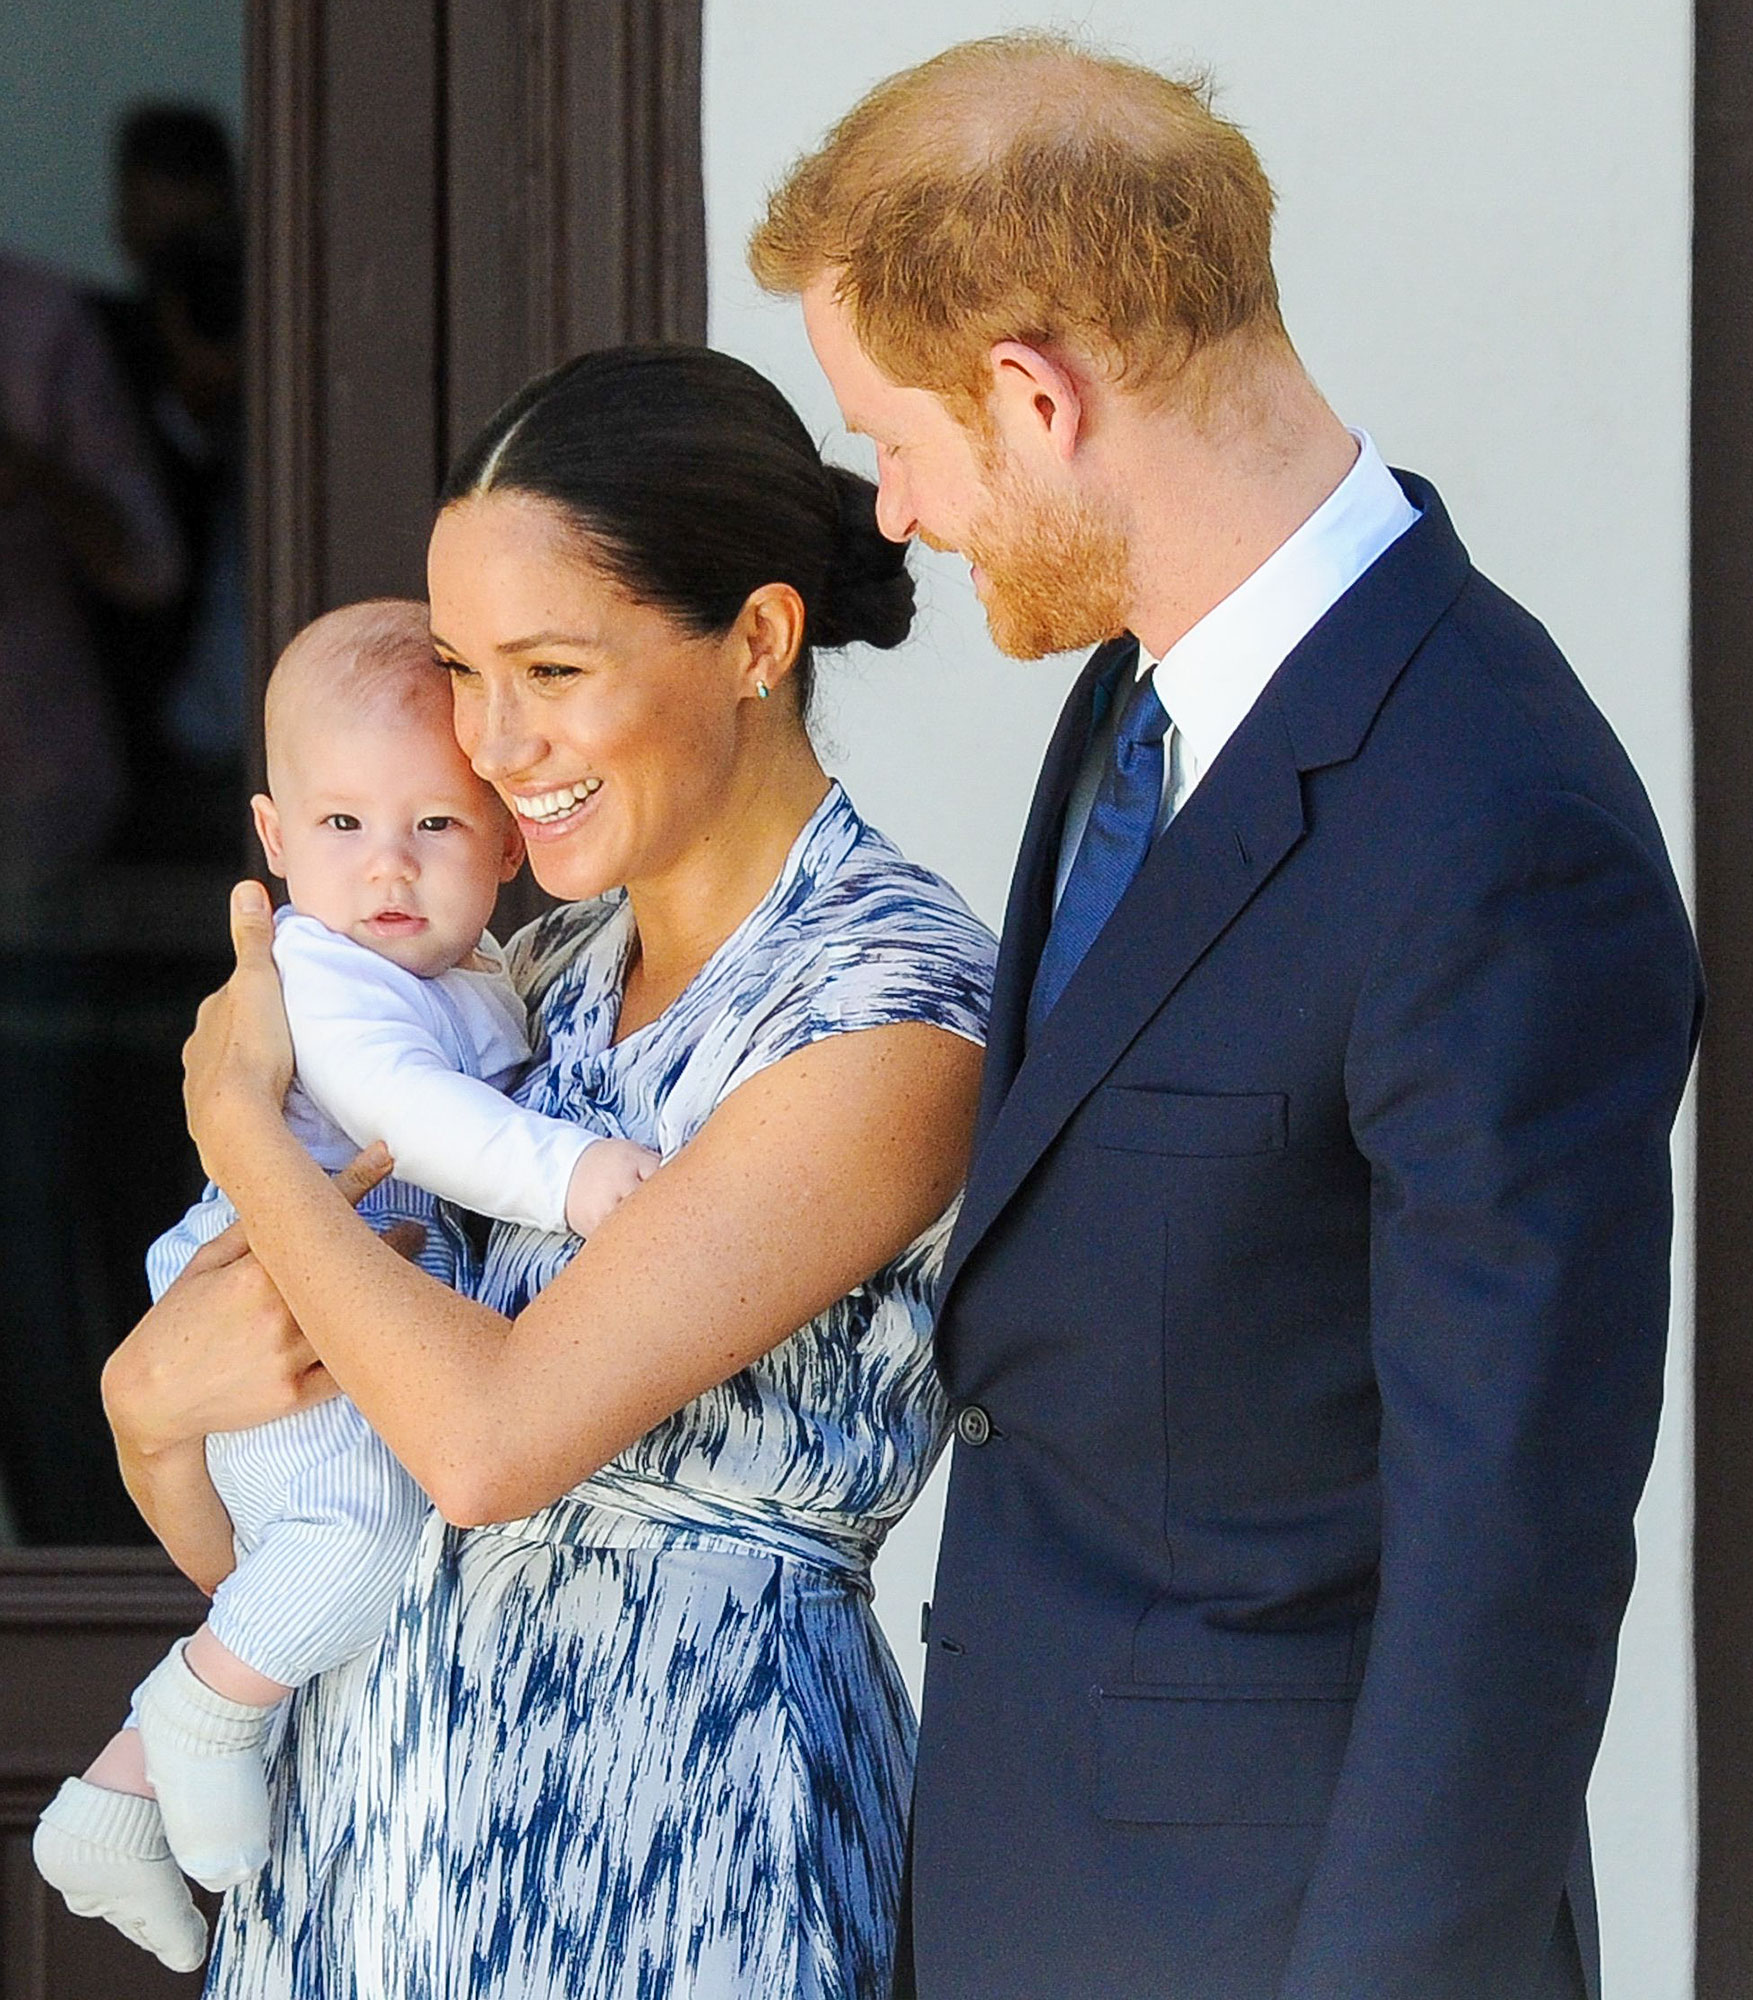 Prince Harry and Duchess Meghan Are Confident After Royal Step Back